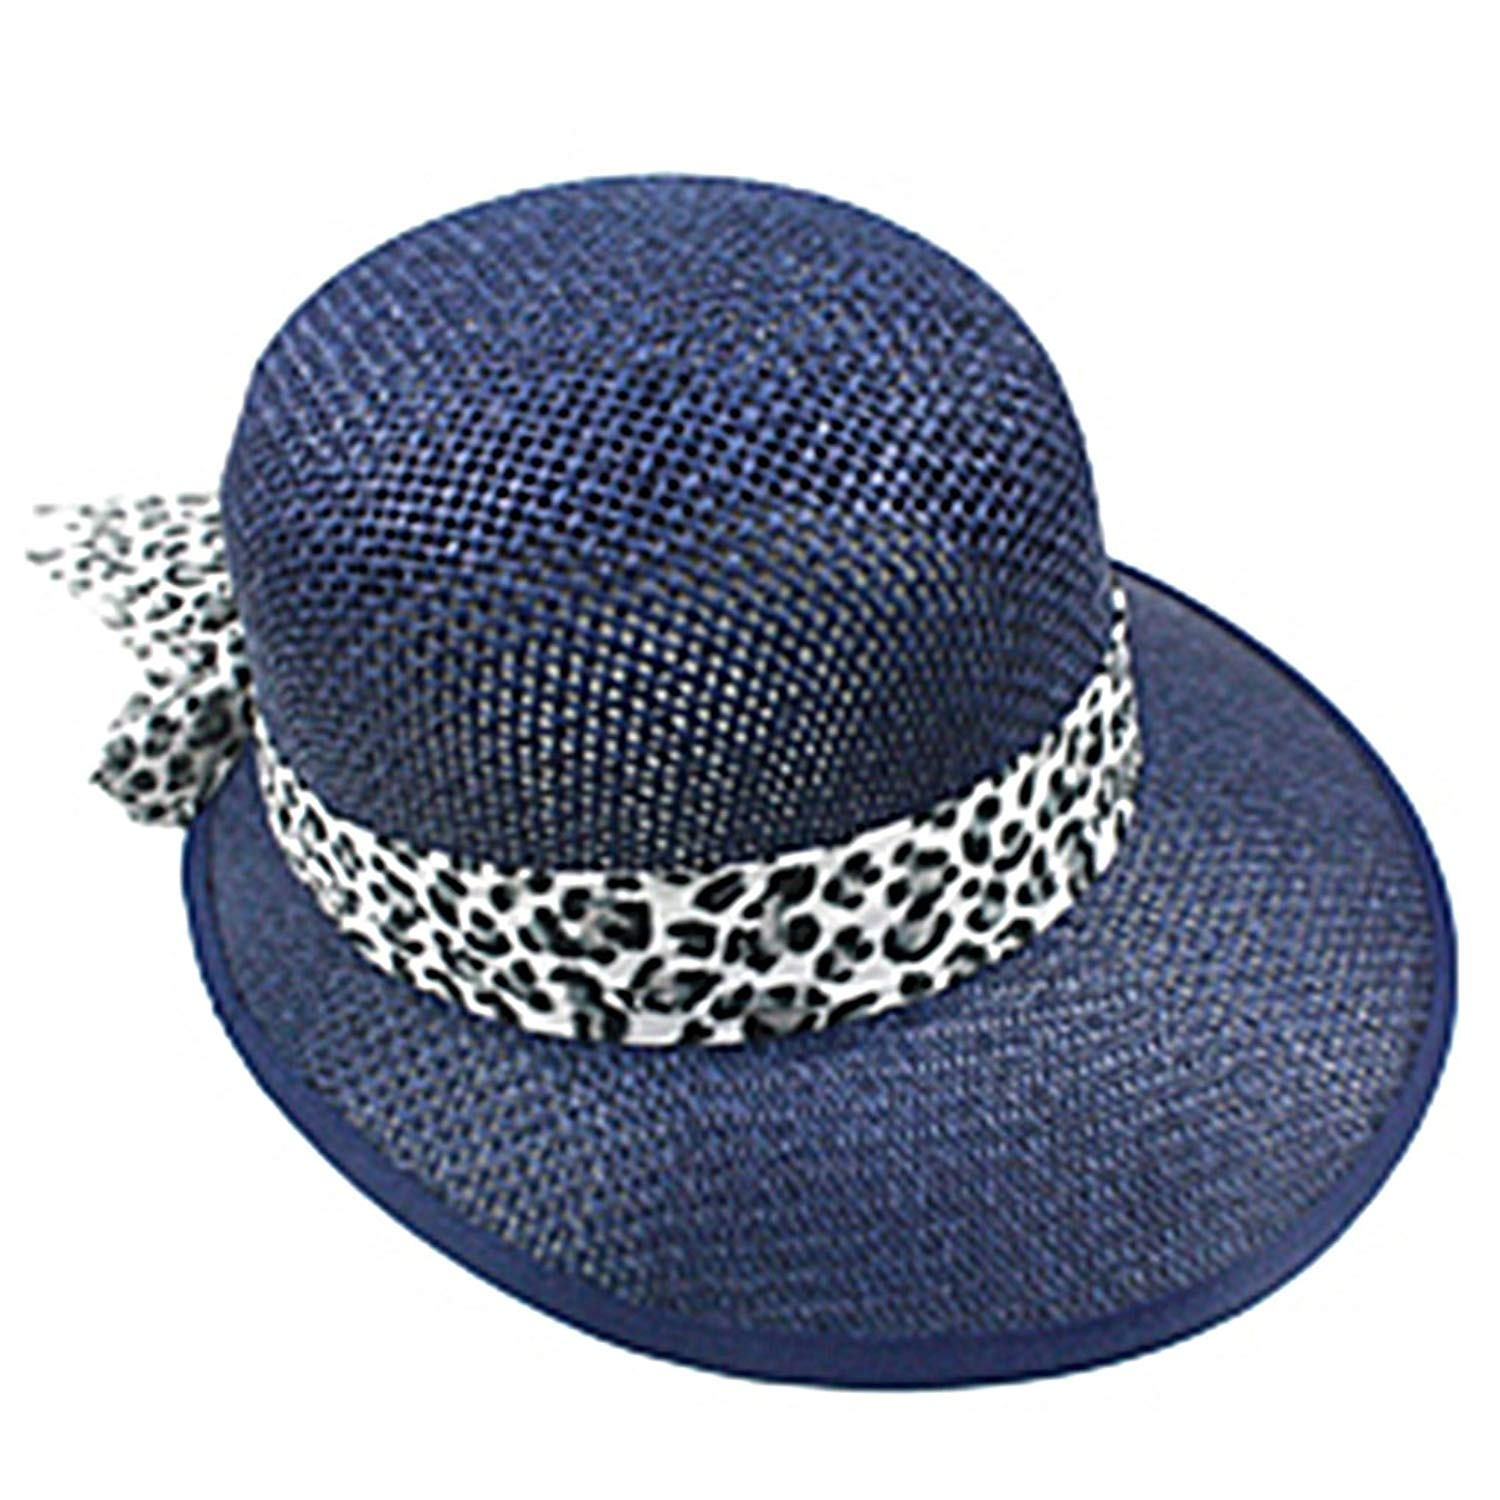 SILVERFEVER Silver Fever Women Summer Fancy Sun Hat Fits All (Navy with Cheetah)